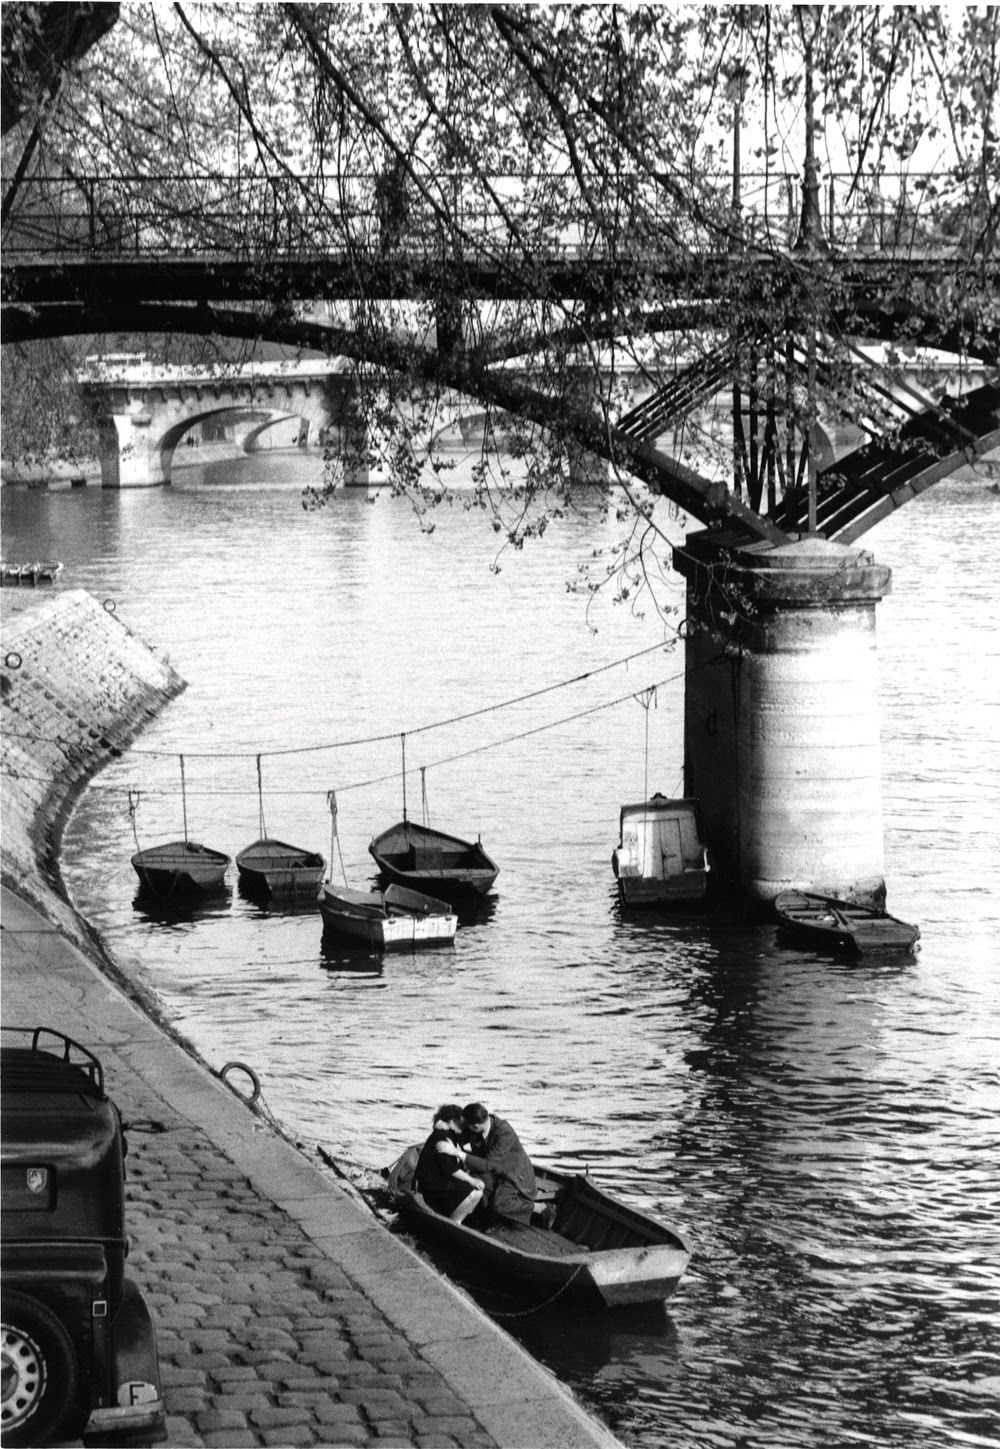 Willy Ronis, Pont des Arts, 1959